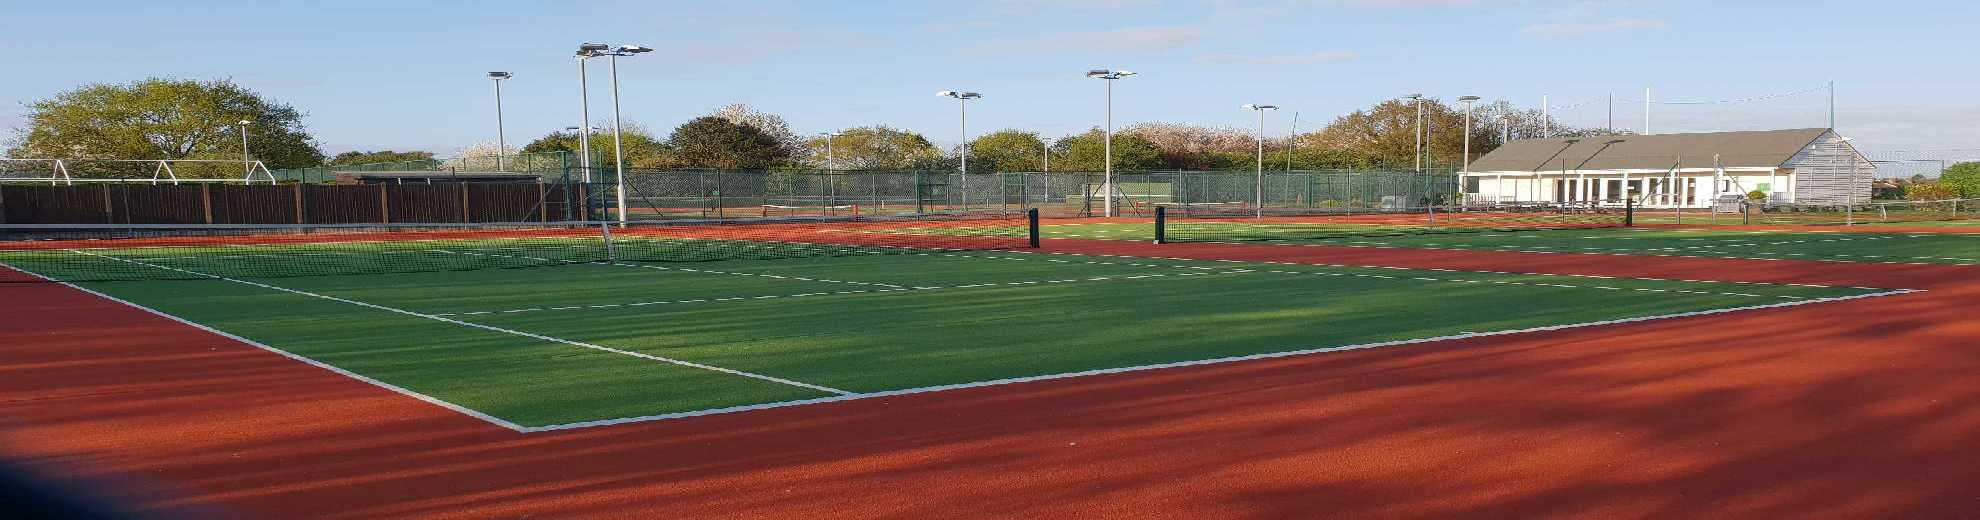 Croxley Tennis Club - Policies and Documents